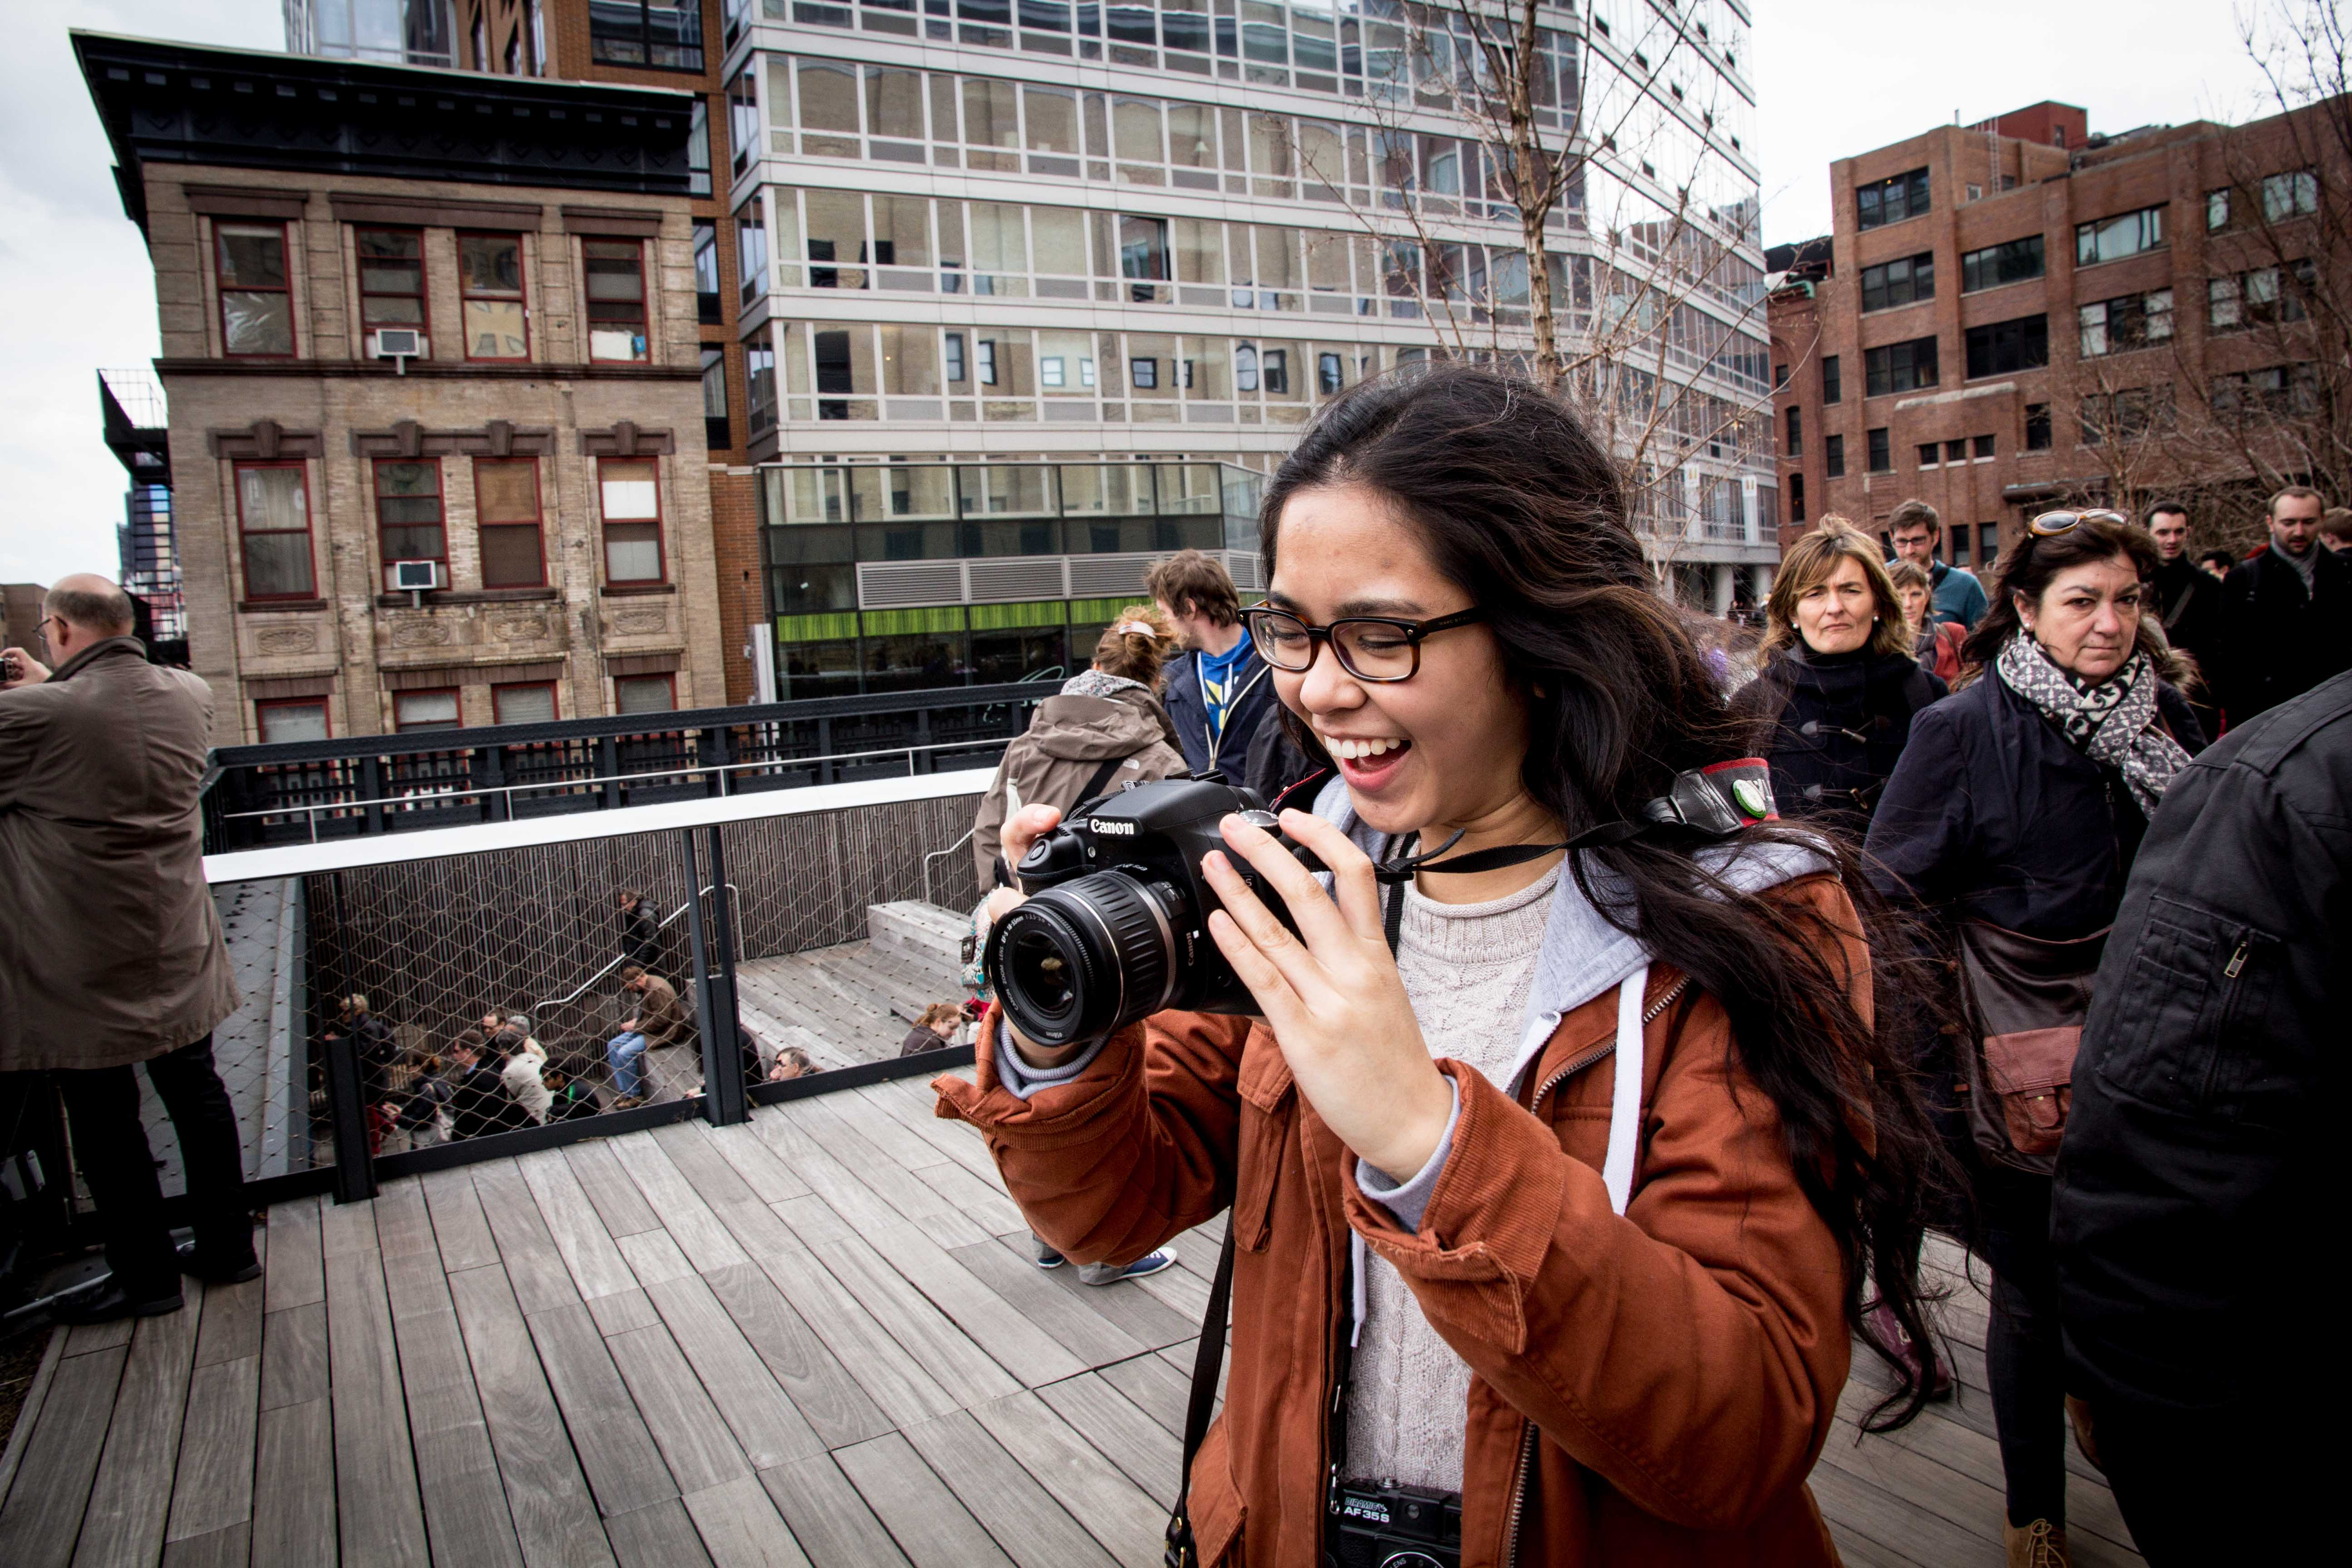 JSED_NYC_Student photo shoot on High Line_Youth